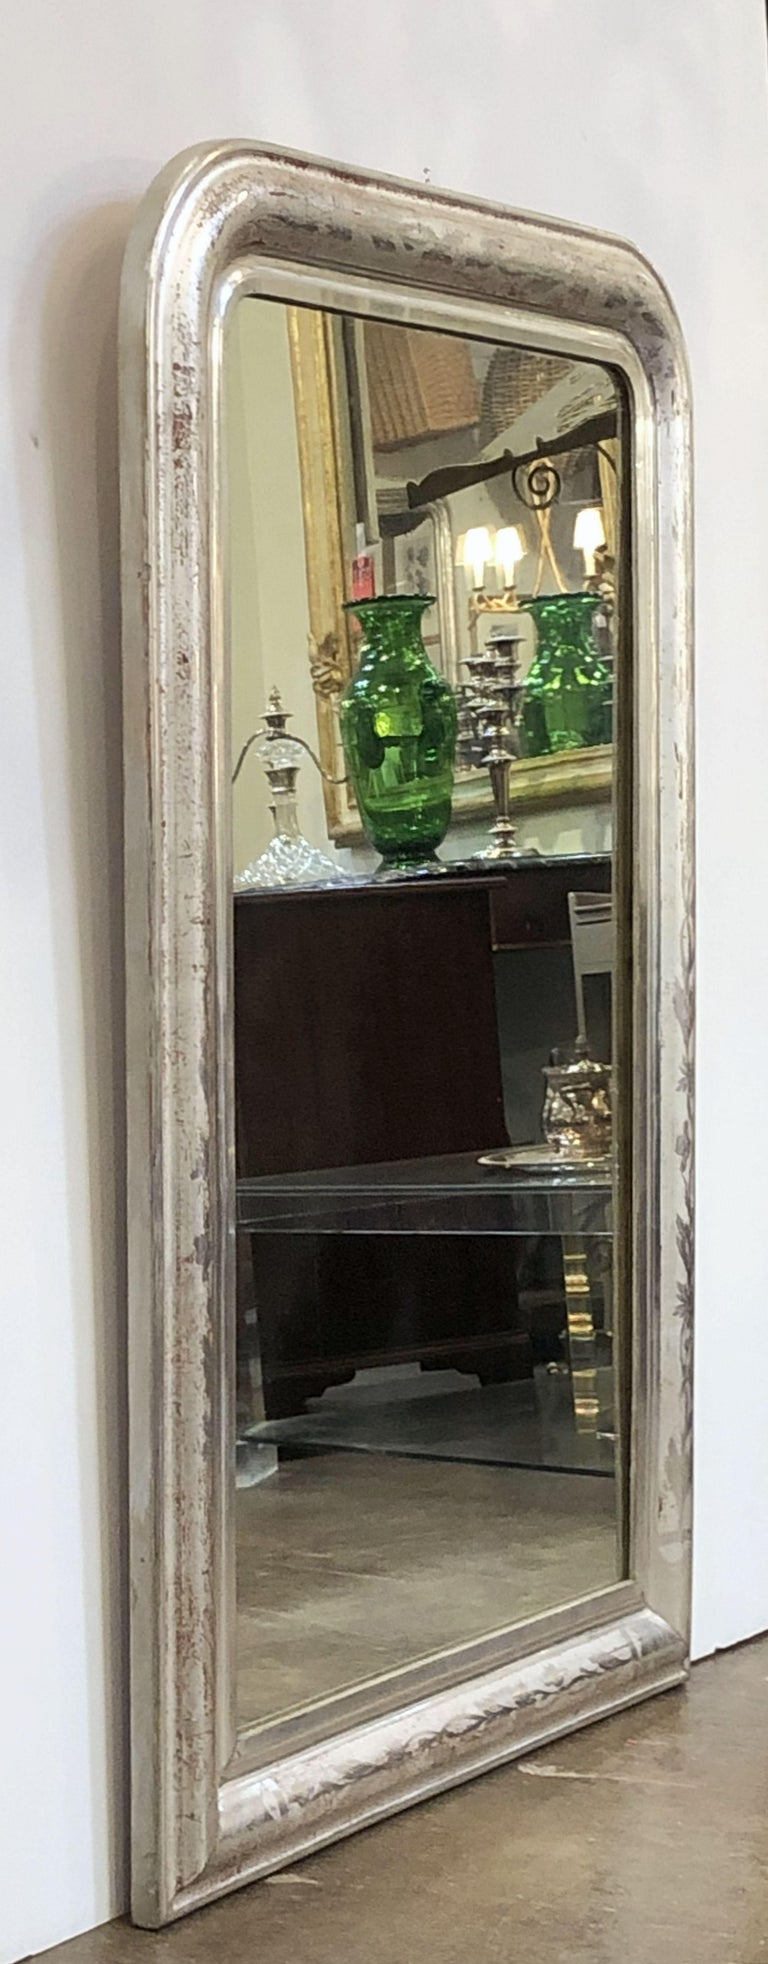 A fine large Louis Philippe wall mirror featuring a moulded surround with a beautiful patinated silver-leaf.  Dimensions: H 43 3/4 inches x W 29 3/8 inches  Other sizes available in this style.